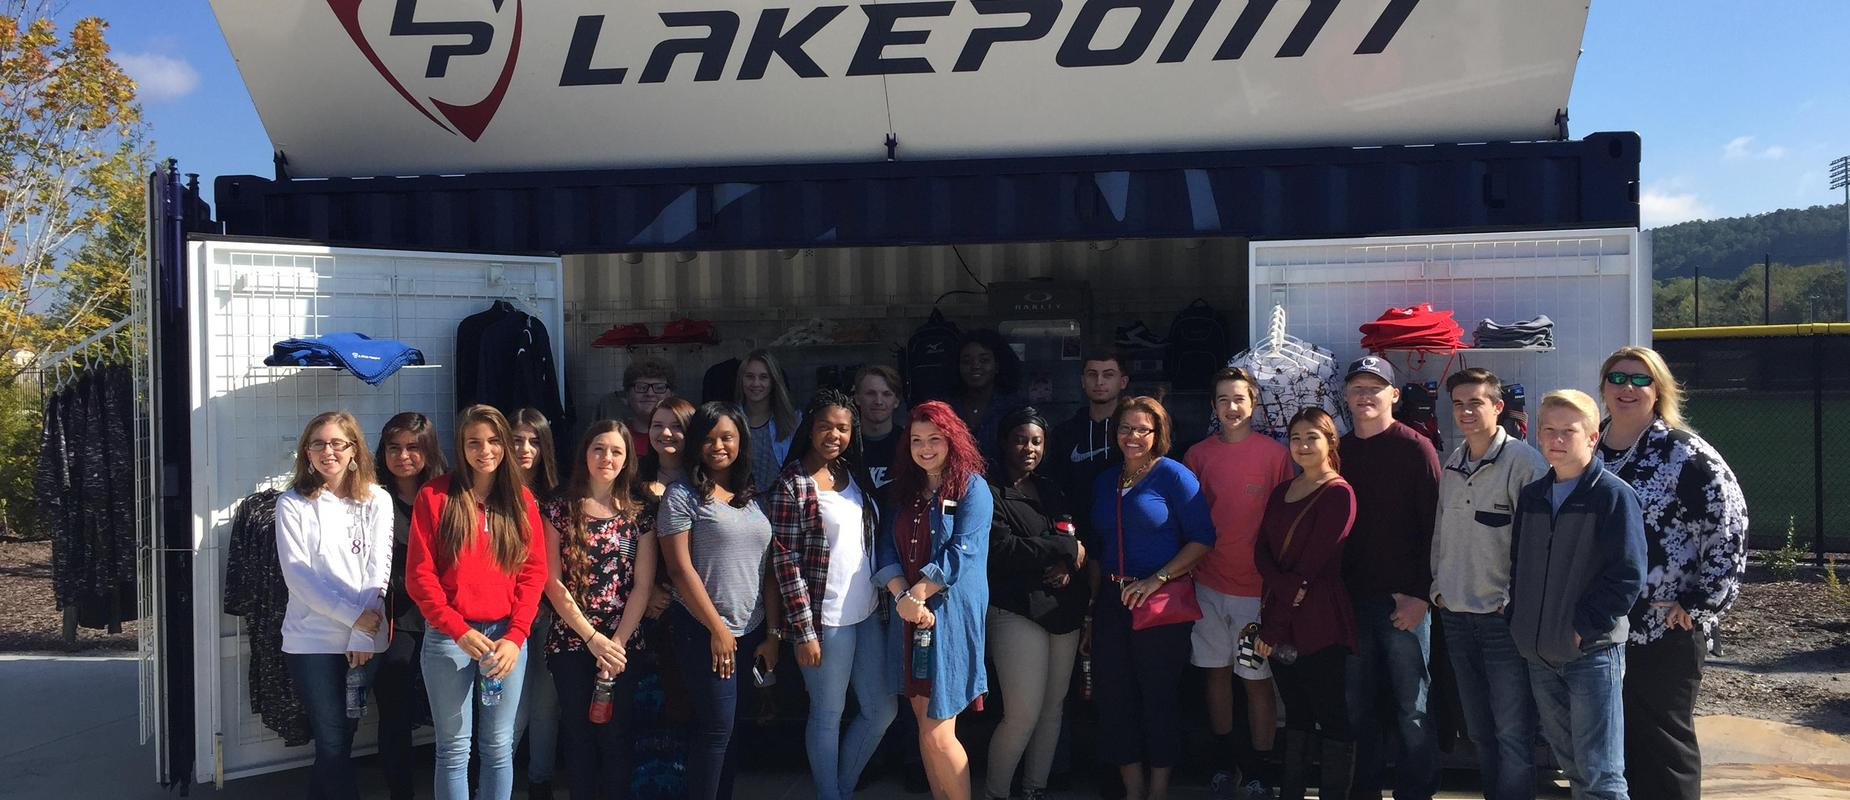 The Marketing Department had a fun time at Lakepoint!